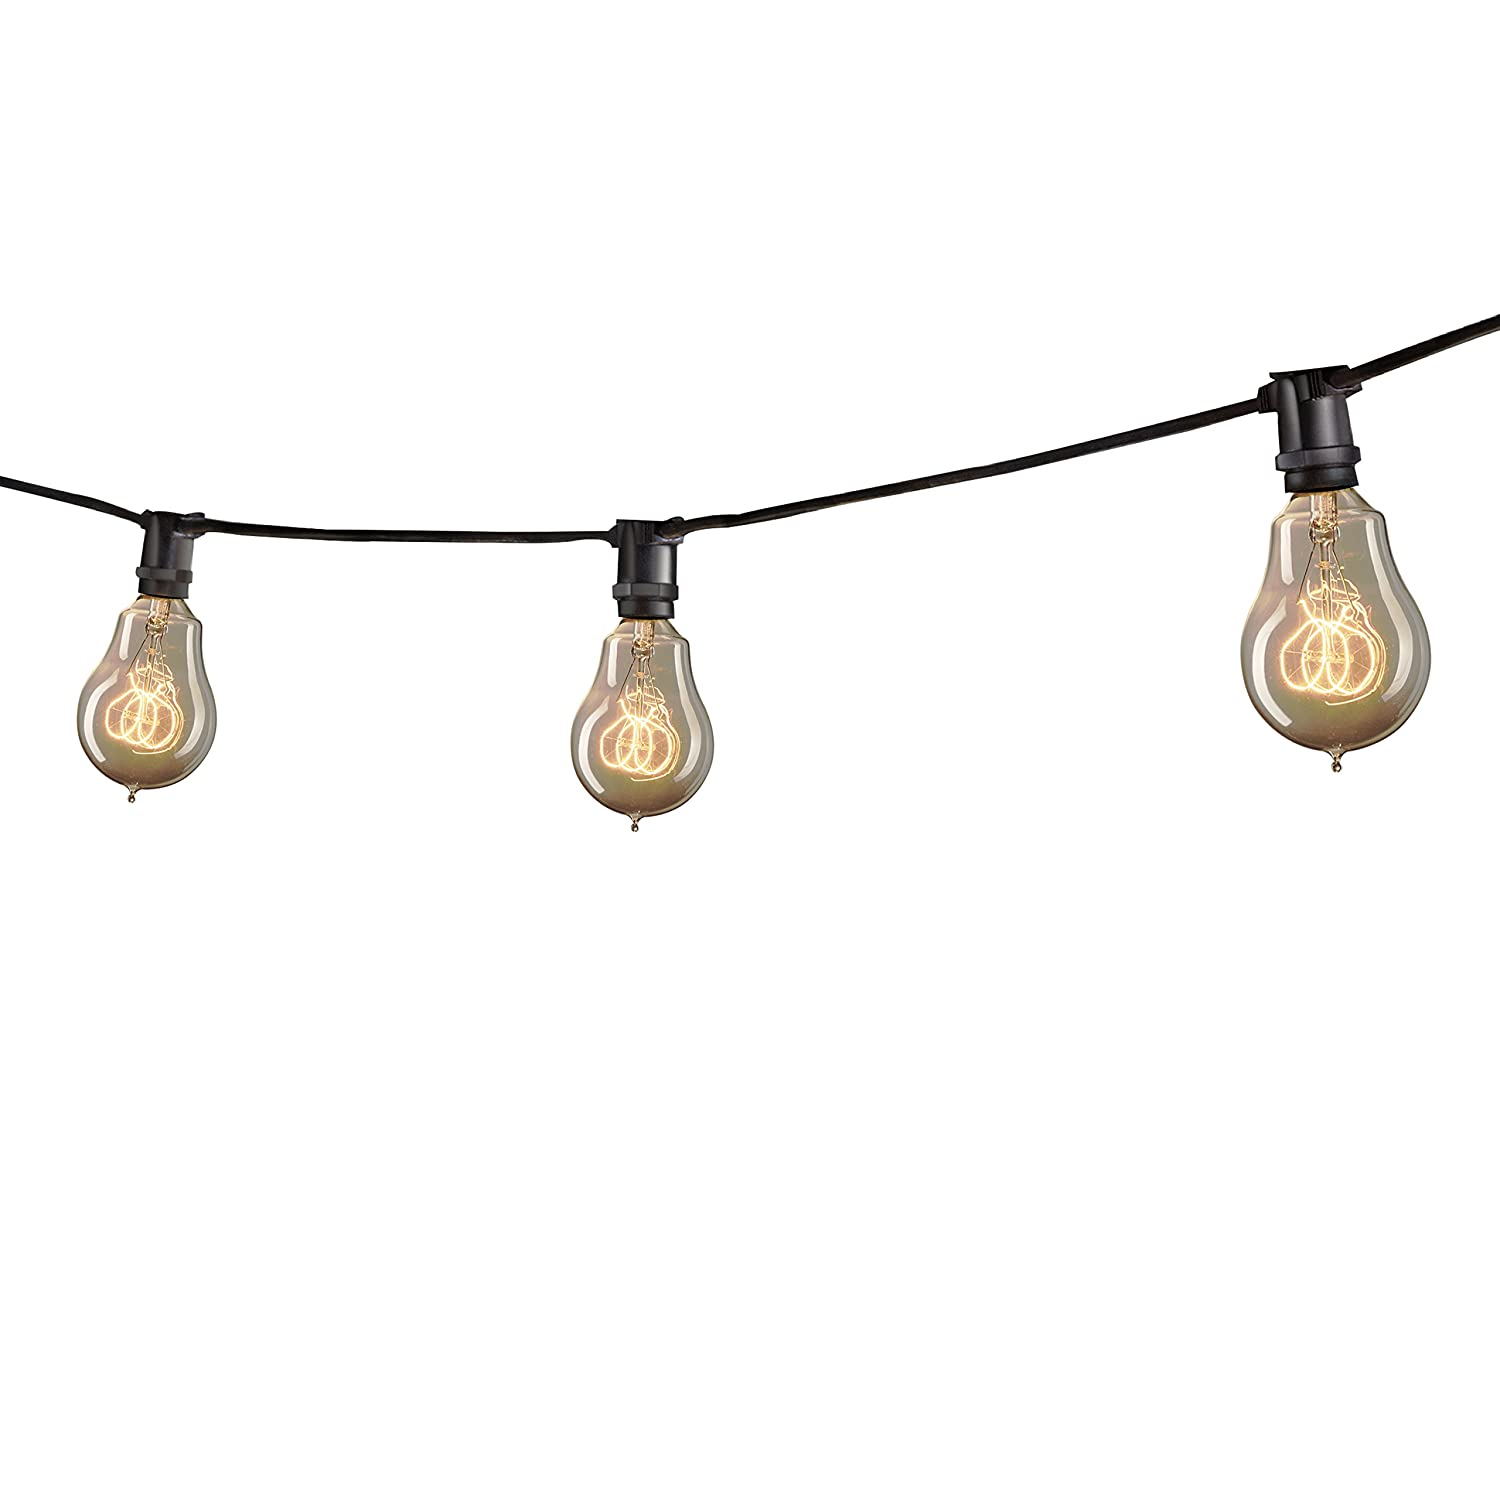 Bulbrite STRING15/E12/BLACK-NOSA15KT Outdoor Mini String Light w/Vintage Edison Bulbs 25-Feet 15 Lights Sockets Black - - Amazon.com  sc 1 st  Amazon.com & Bulbrite STRING15/E12/BLACK-NOSA15KT Outdoor Mini String Light w ...